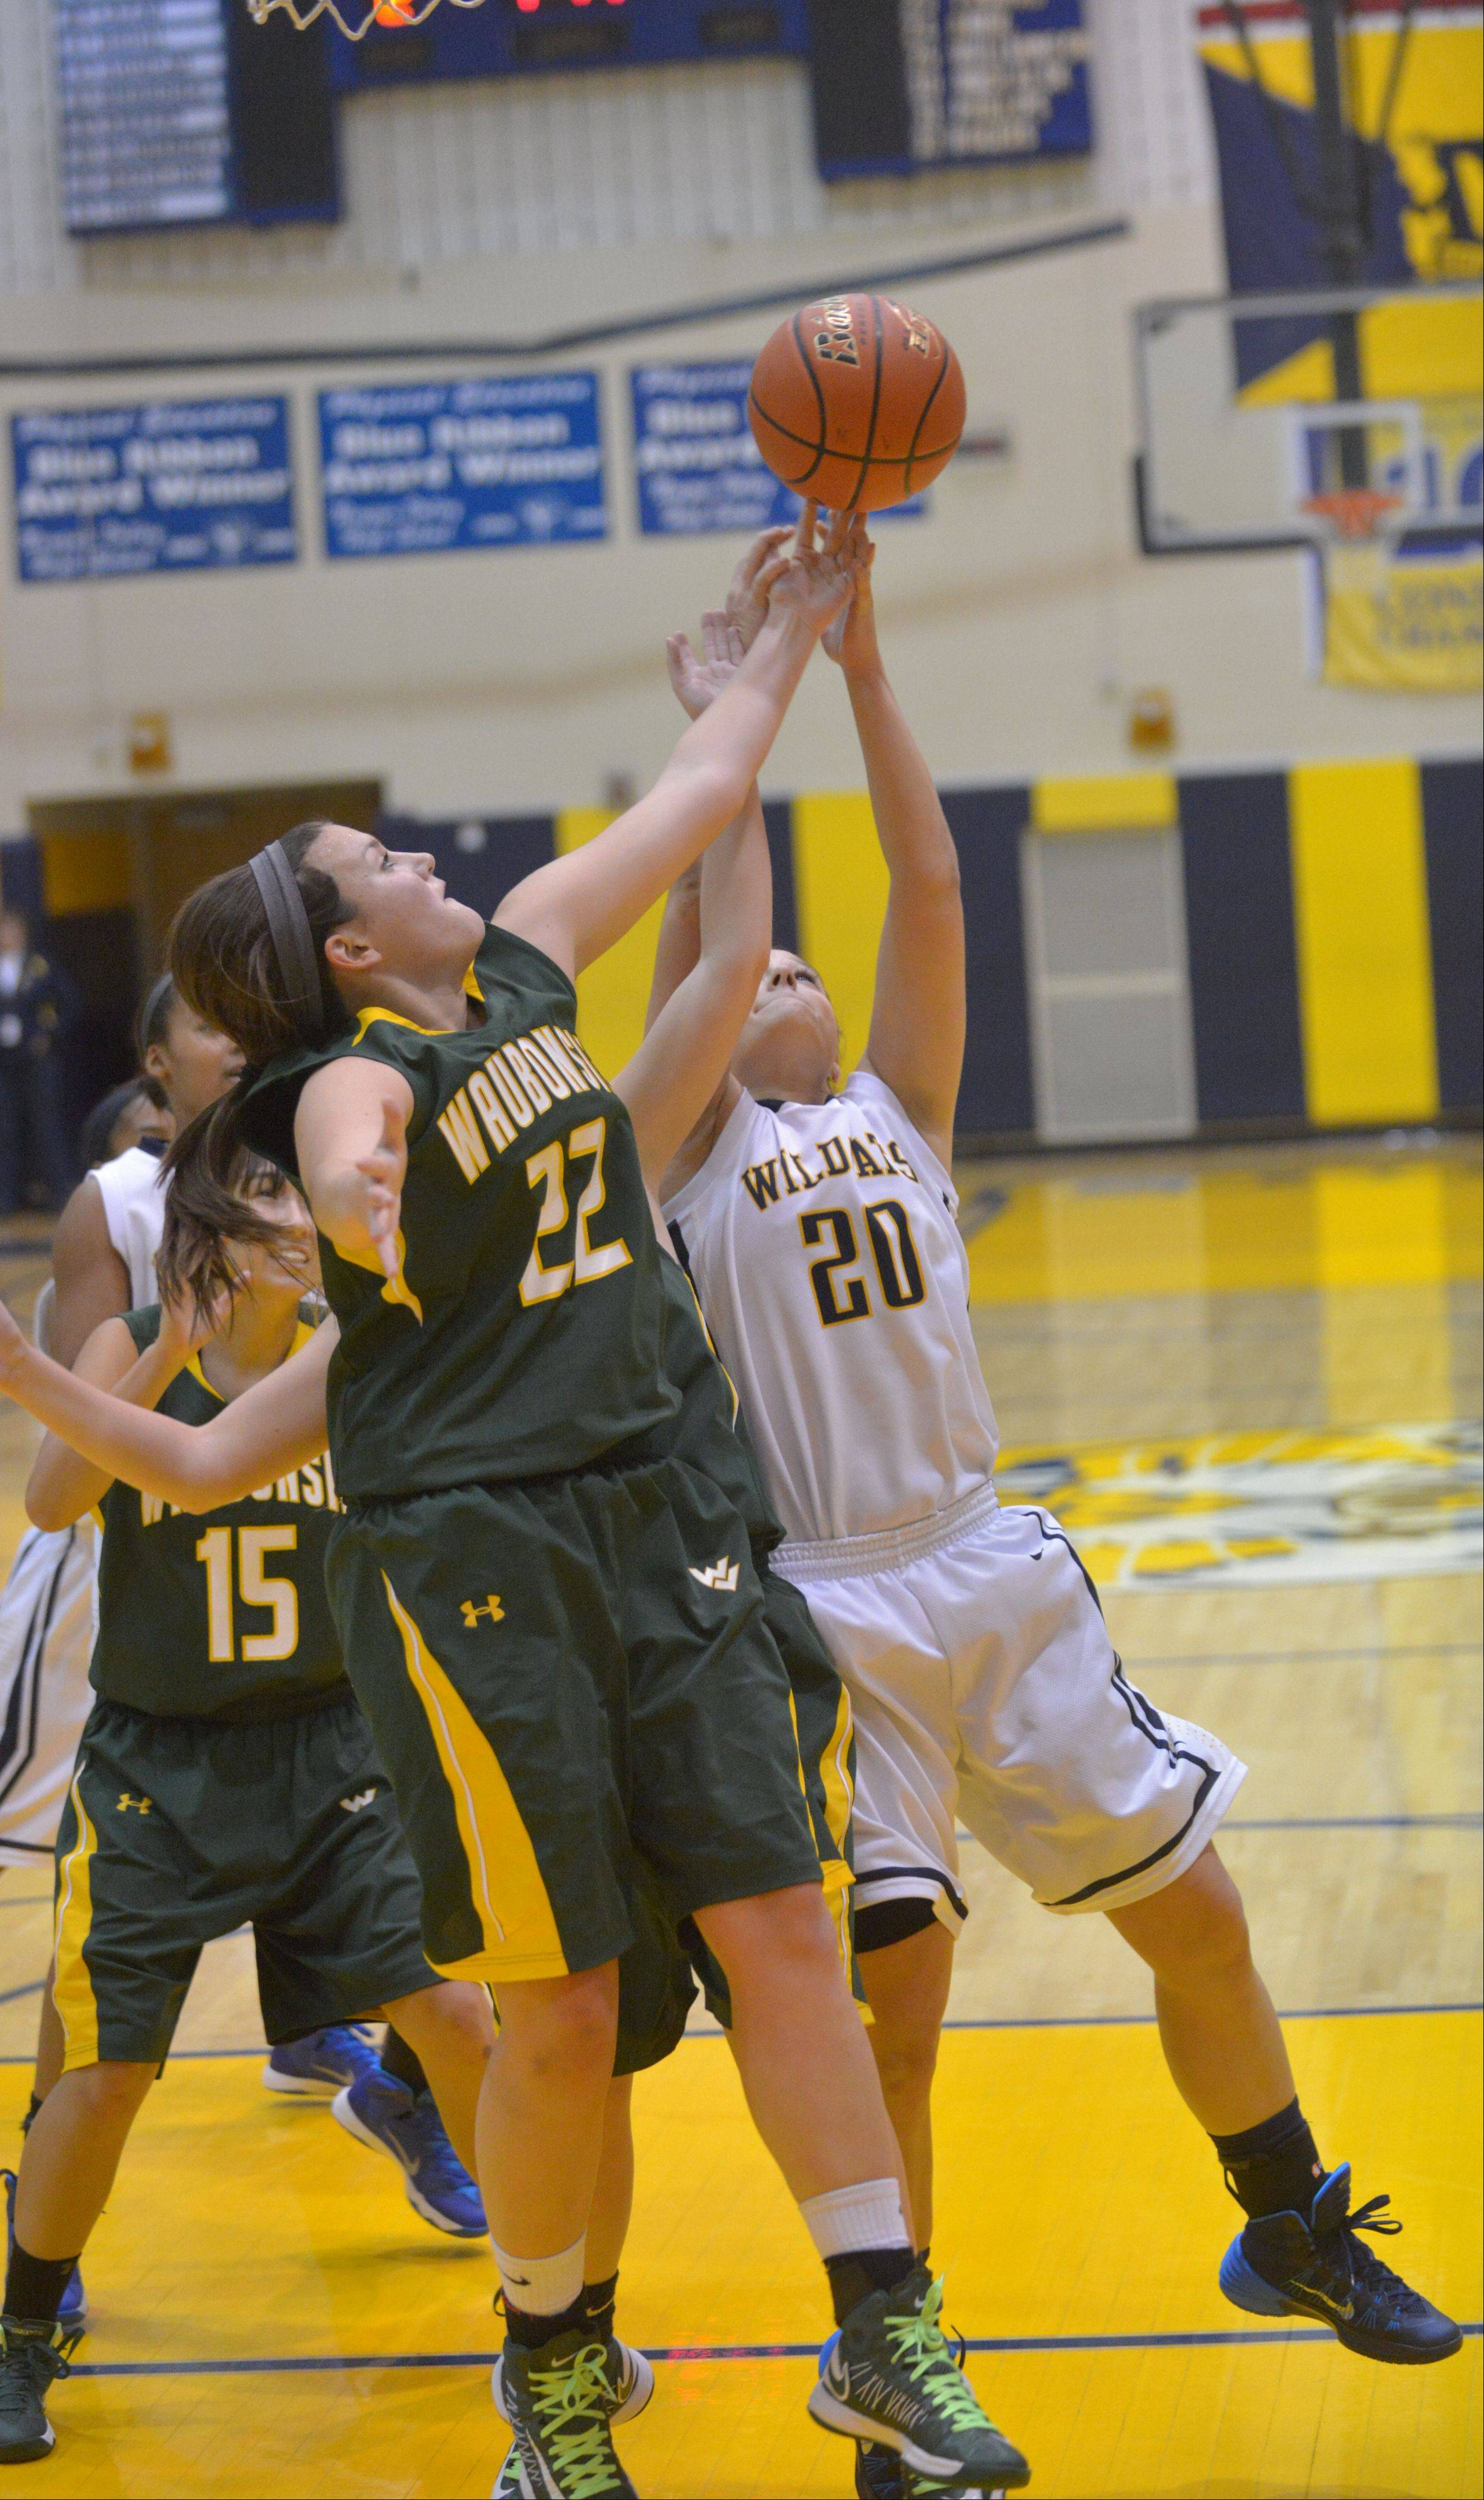 Images from the Neuqua Valley vs. Waubonsie Valley girls basketball game on Saturday, Dec. 7.